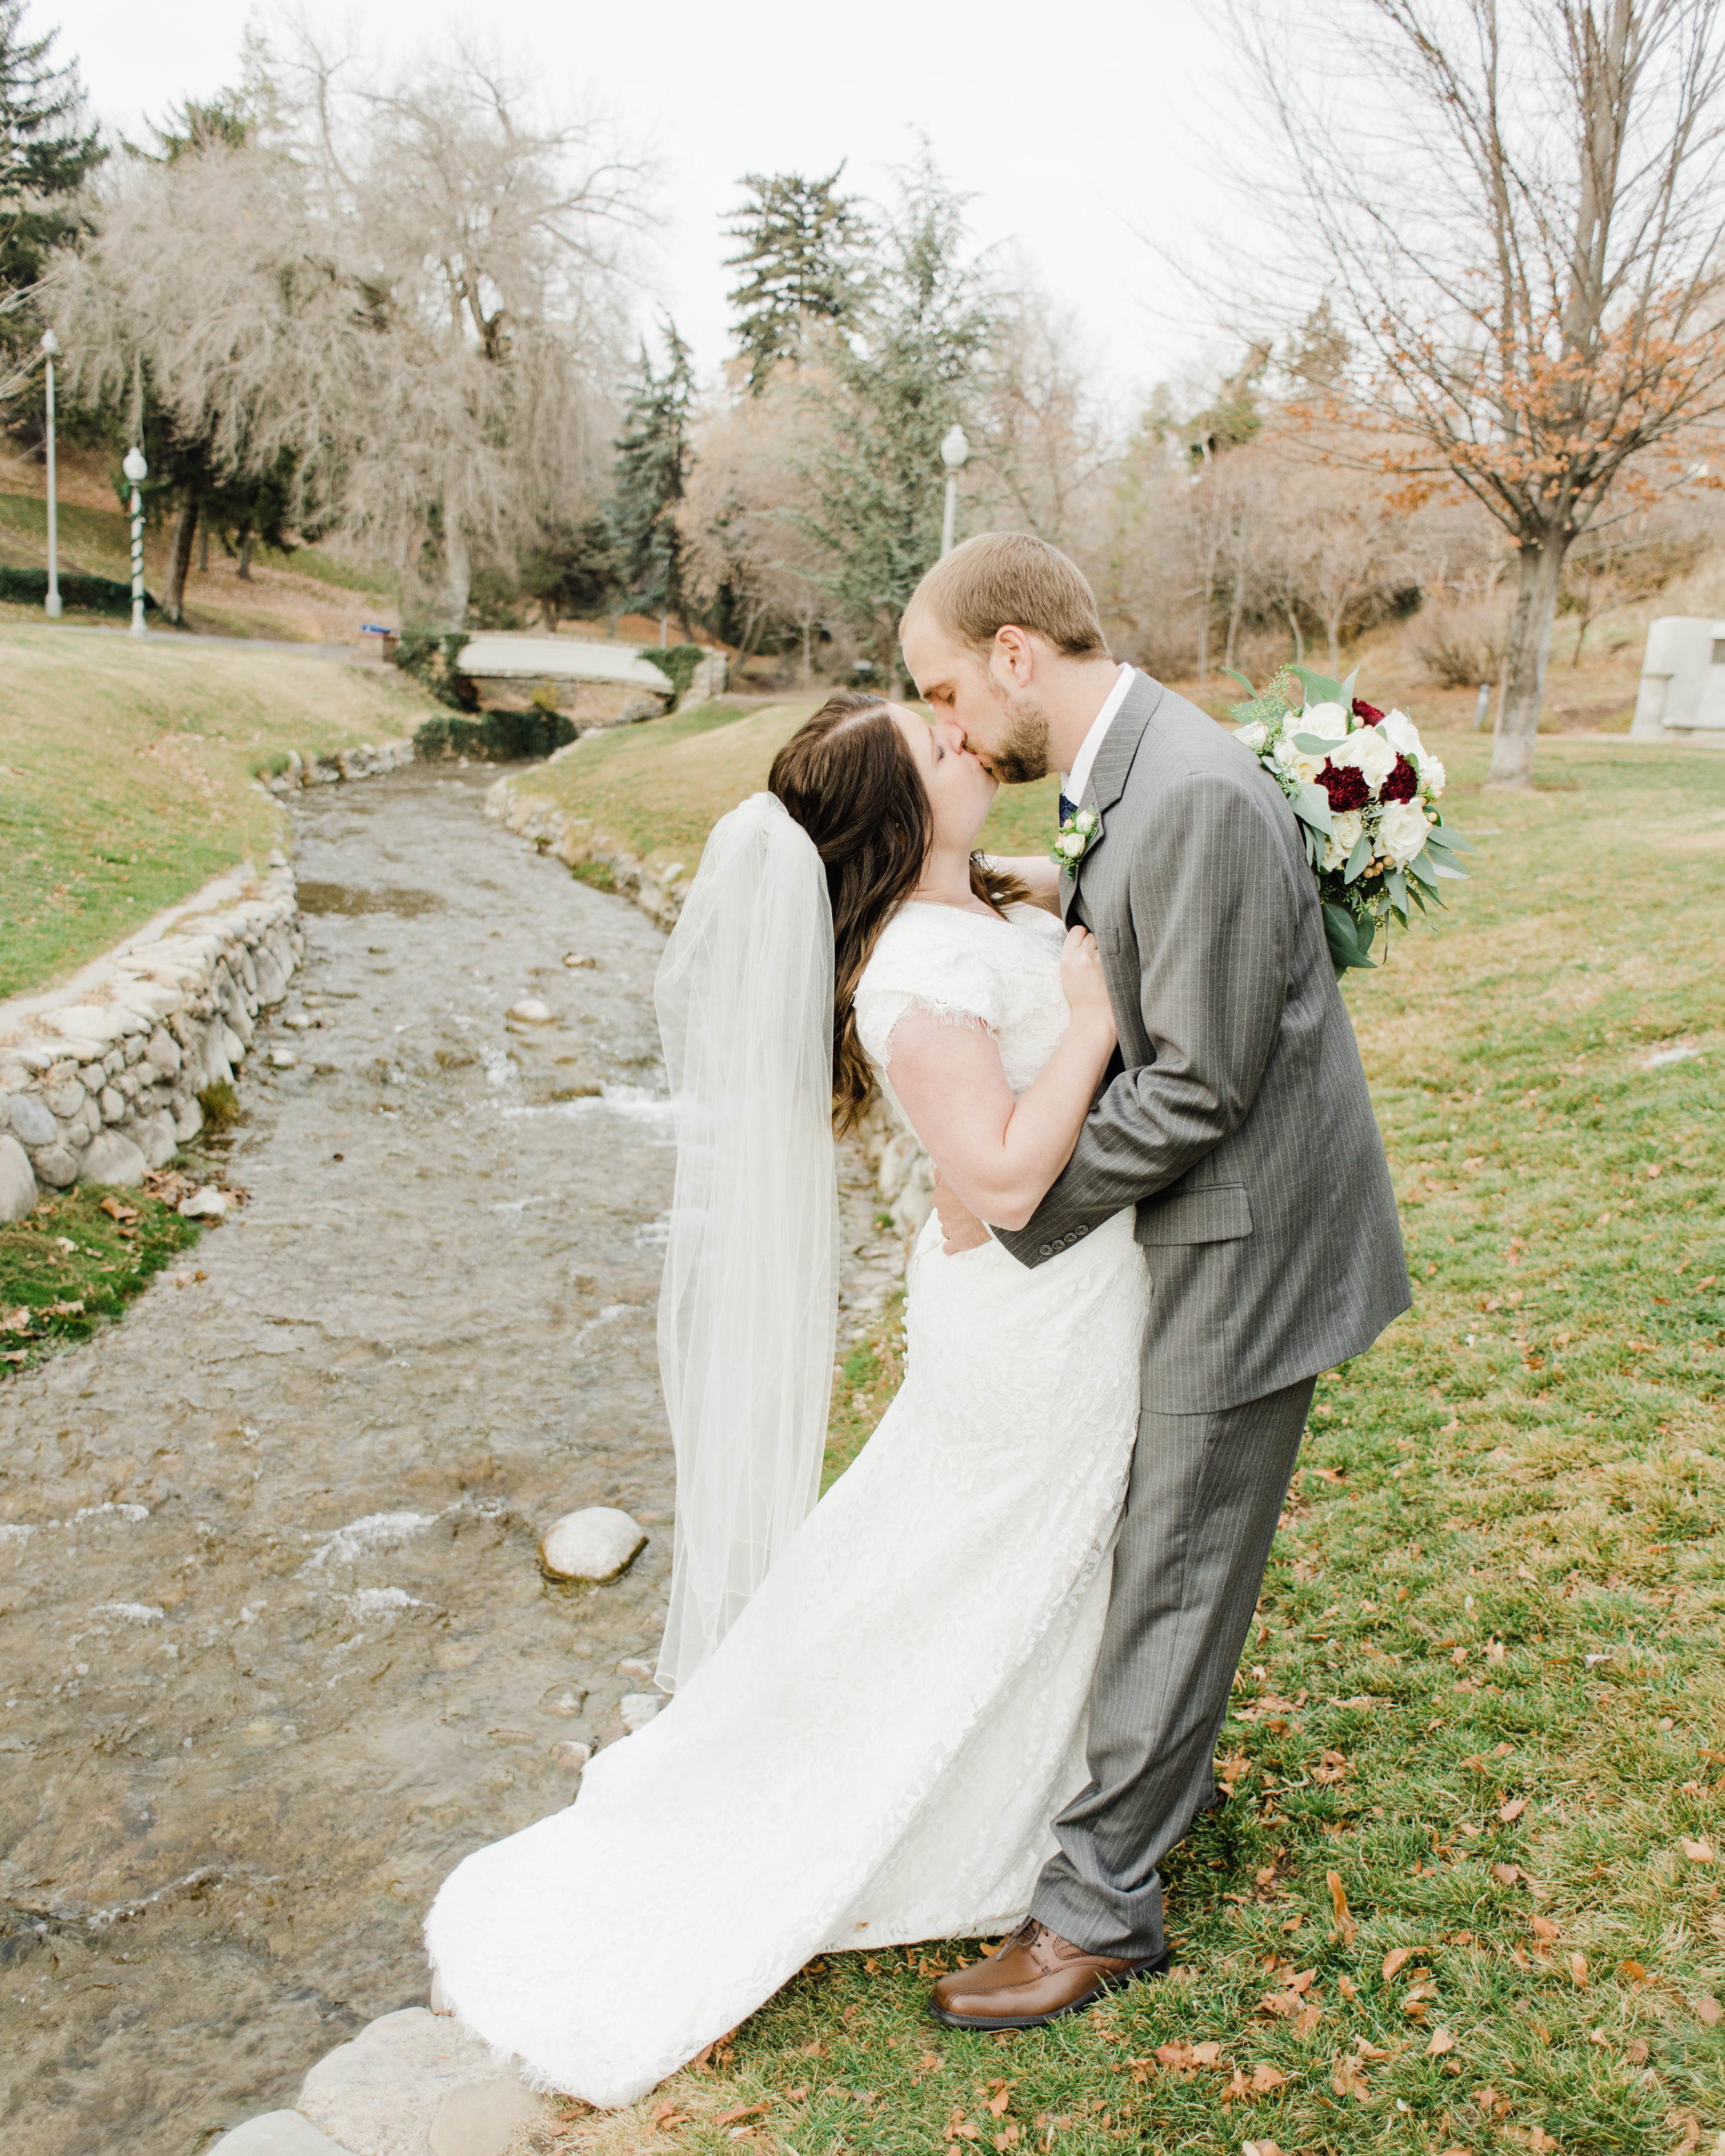 LINDSAY+BRAD-BRIDALS-Sadie_Banks_Photography-56.jpg